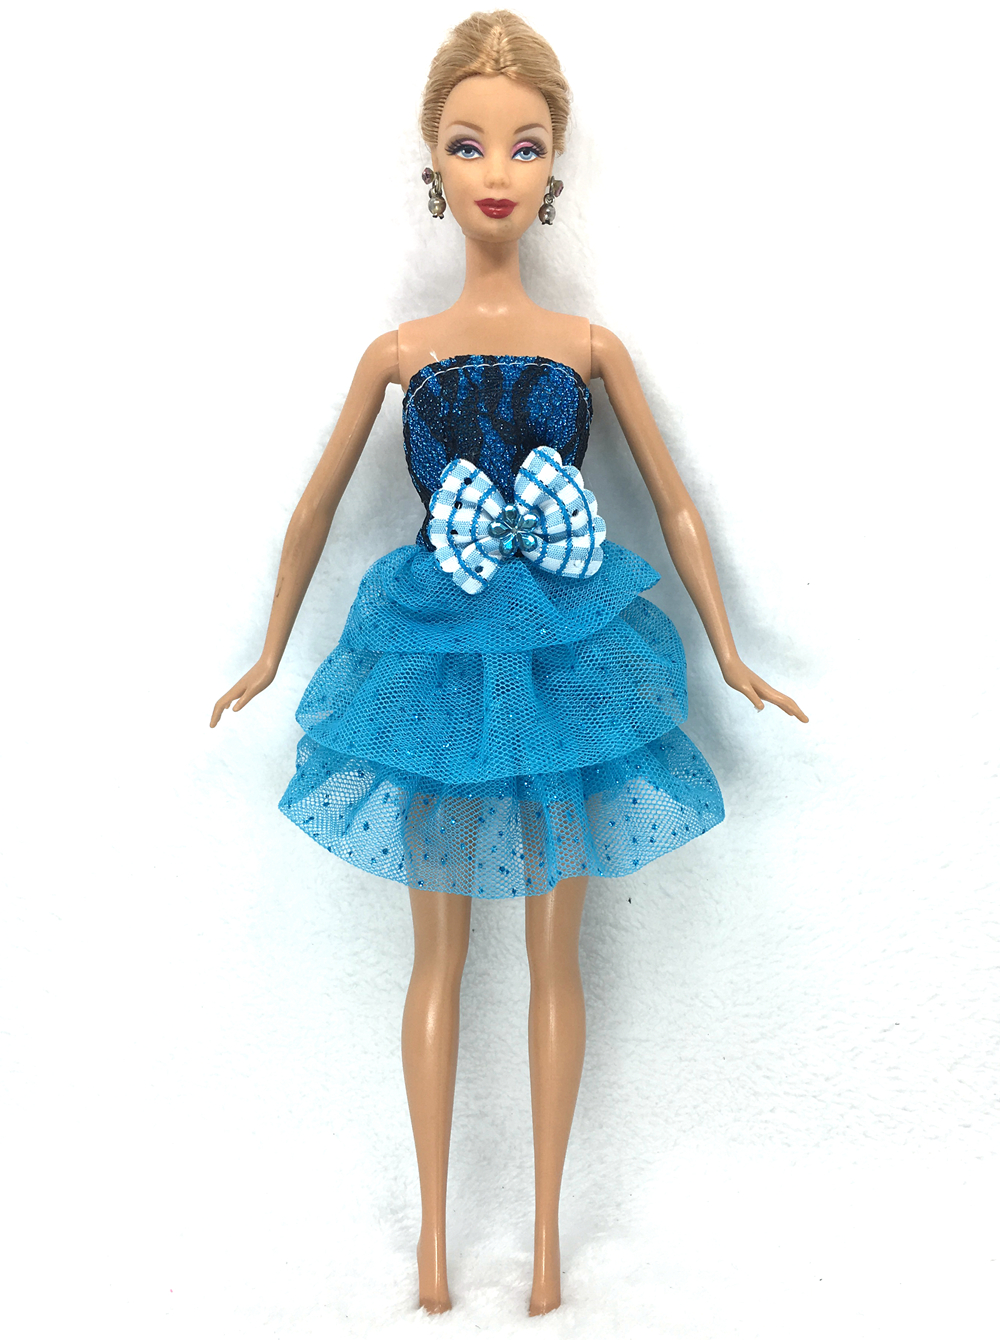 NK 2016 Latest Doll Gown Stunning Handmade Occasion ClothesTop Trend Gown For Barbie Noble Doll Finest Little one Ladies'Present 009A